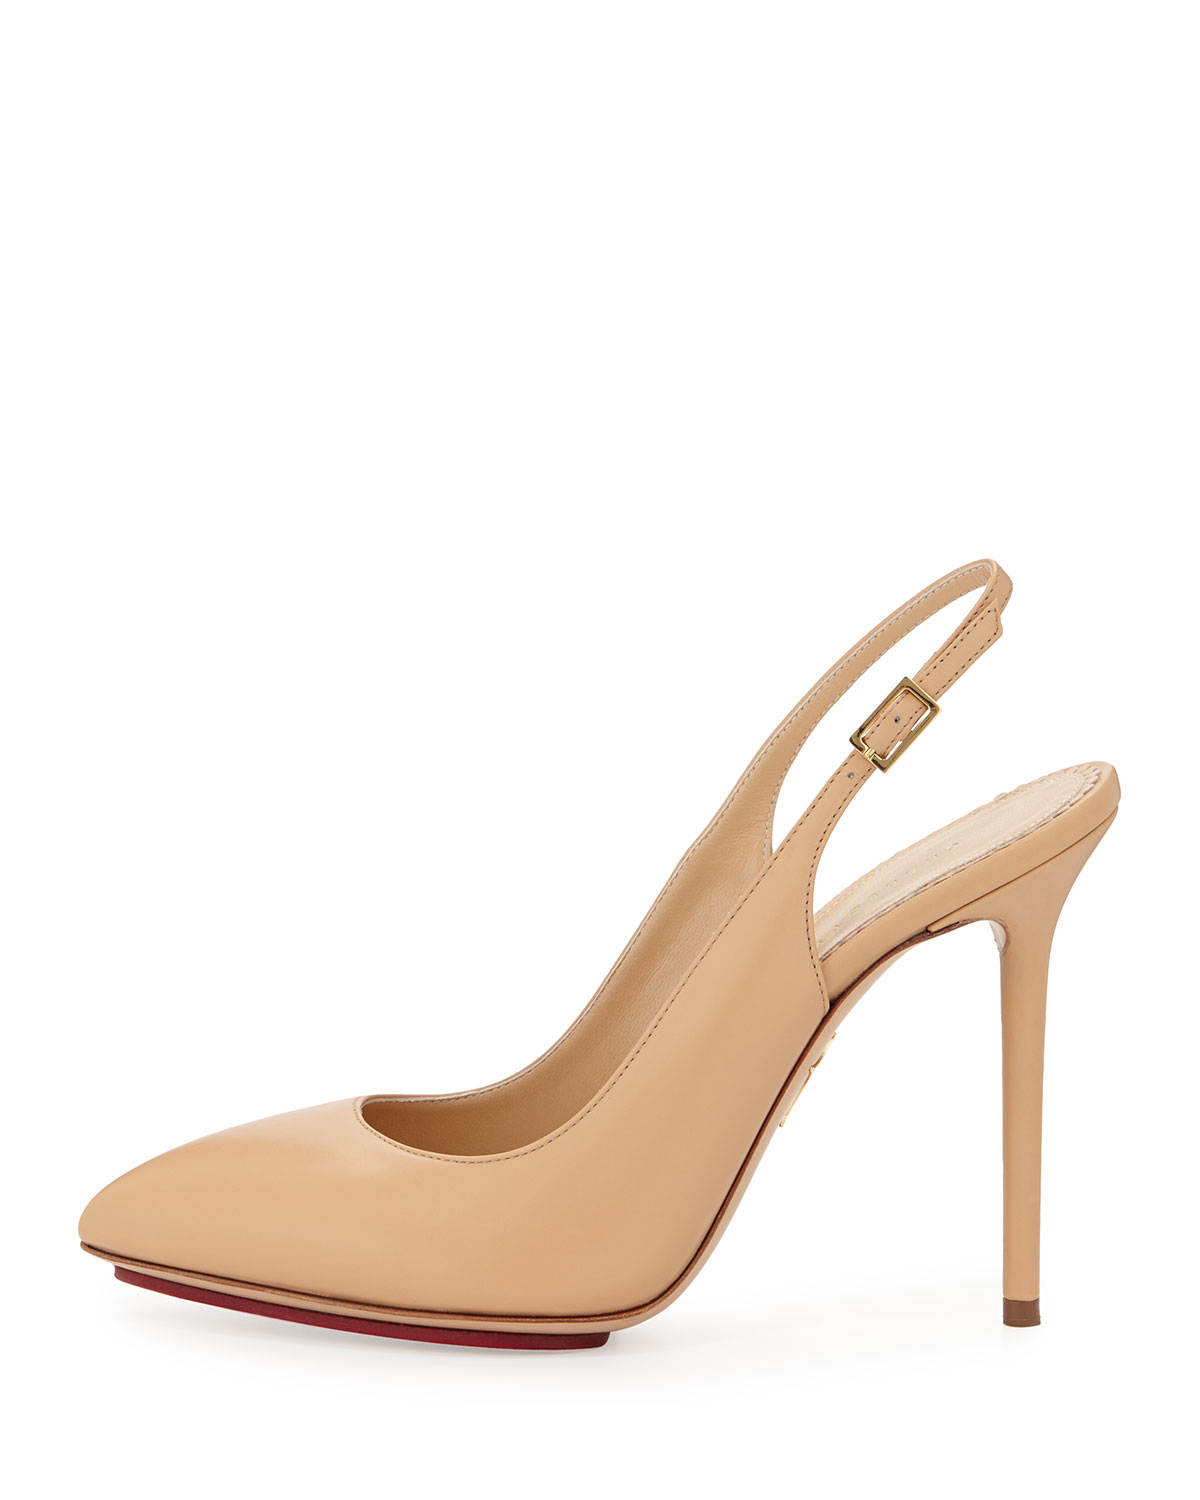 Charlotte Olympia Taupe Sling Back Sandals n3iNTYhI